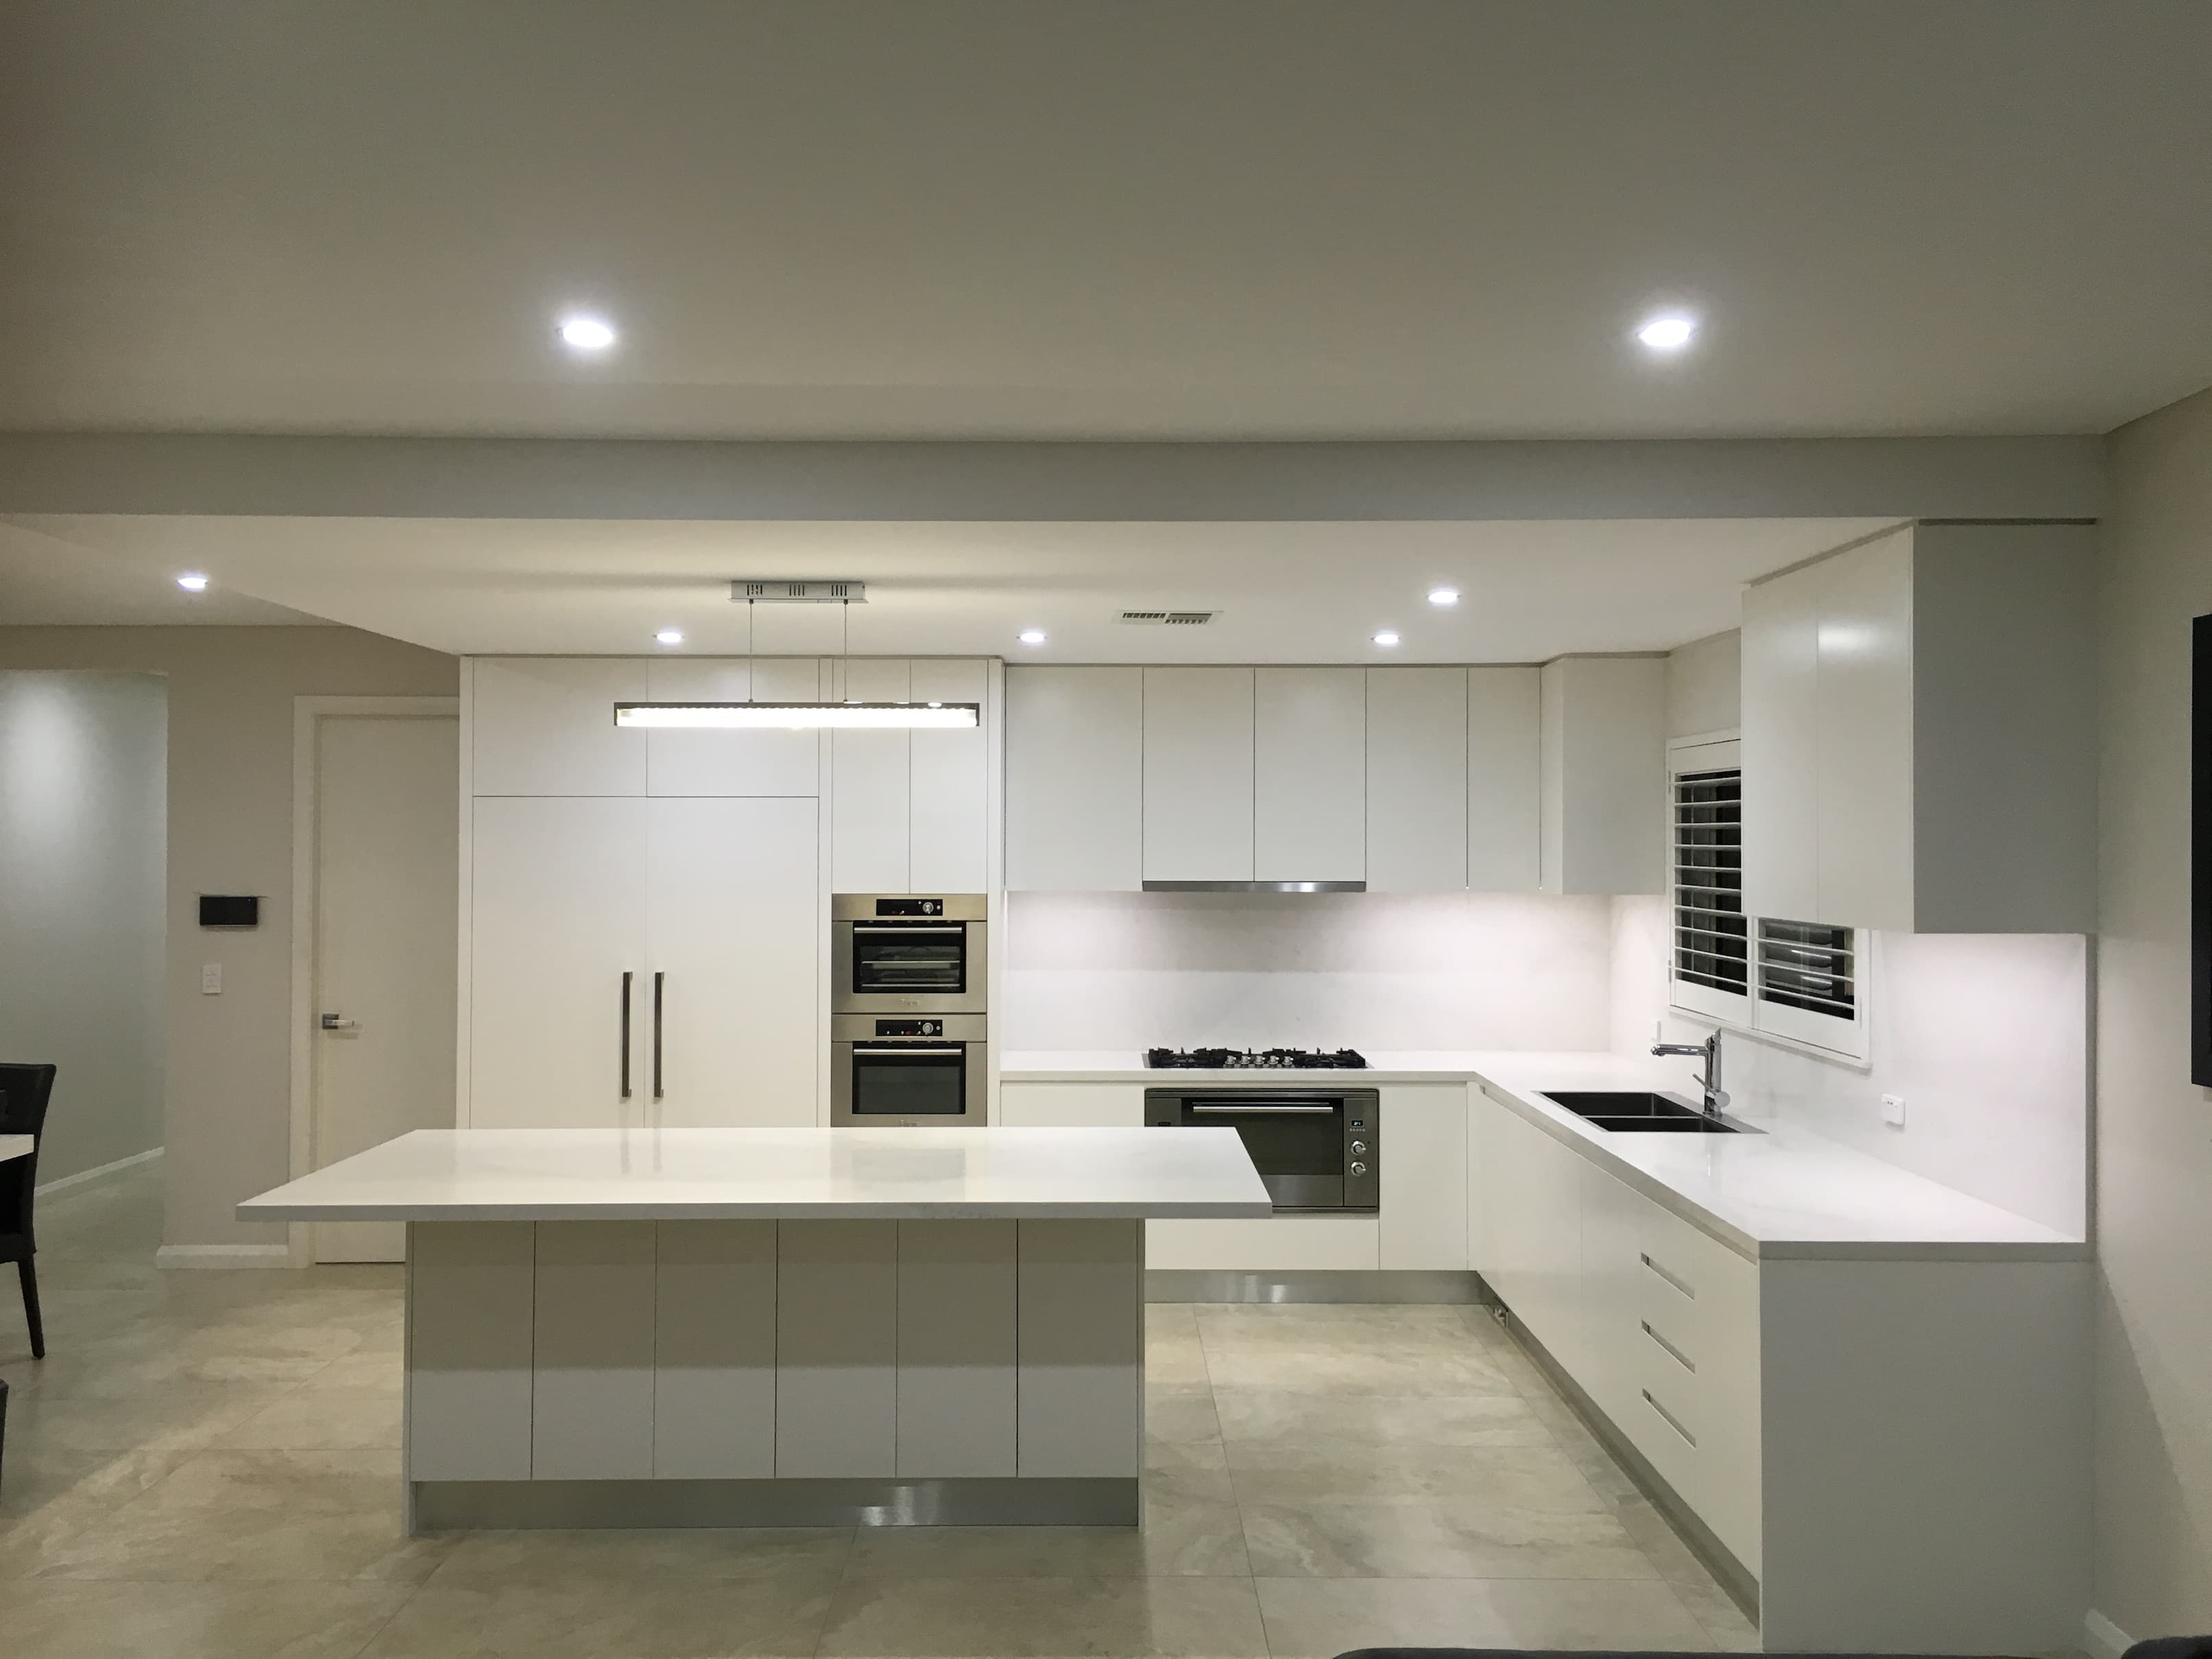 kitchen renovation project in Sydney with lights